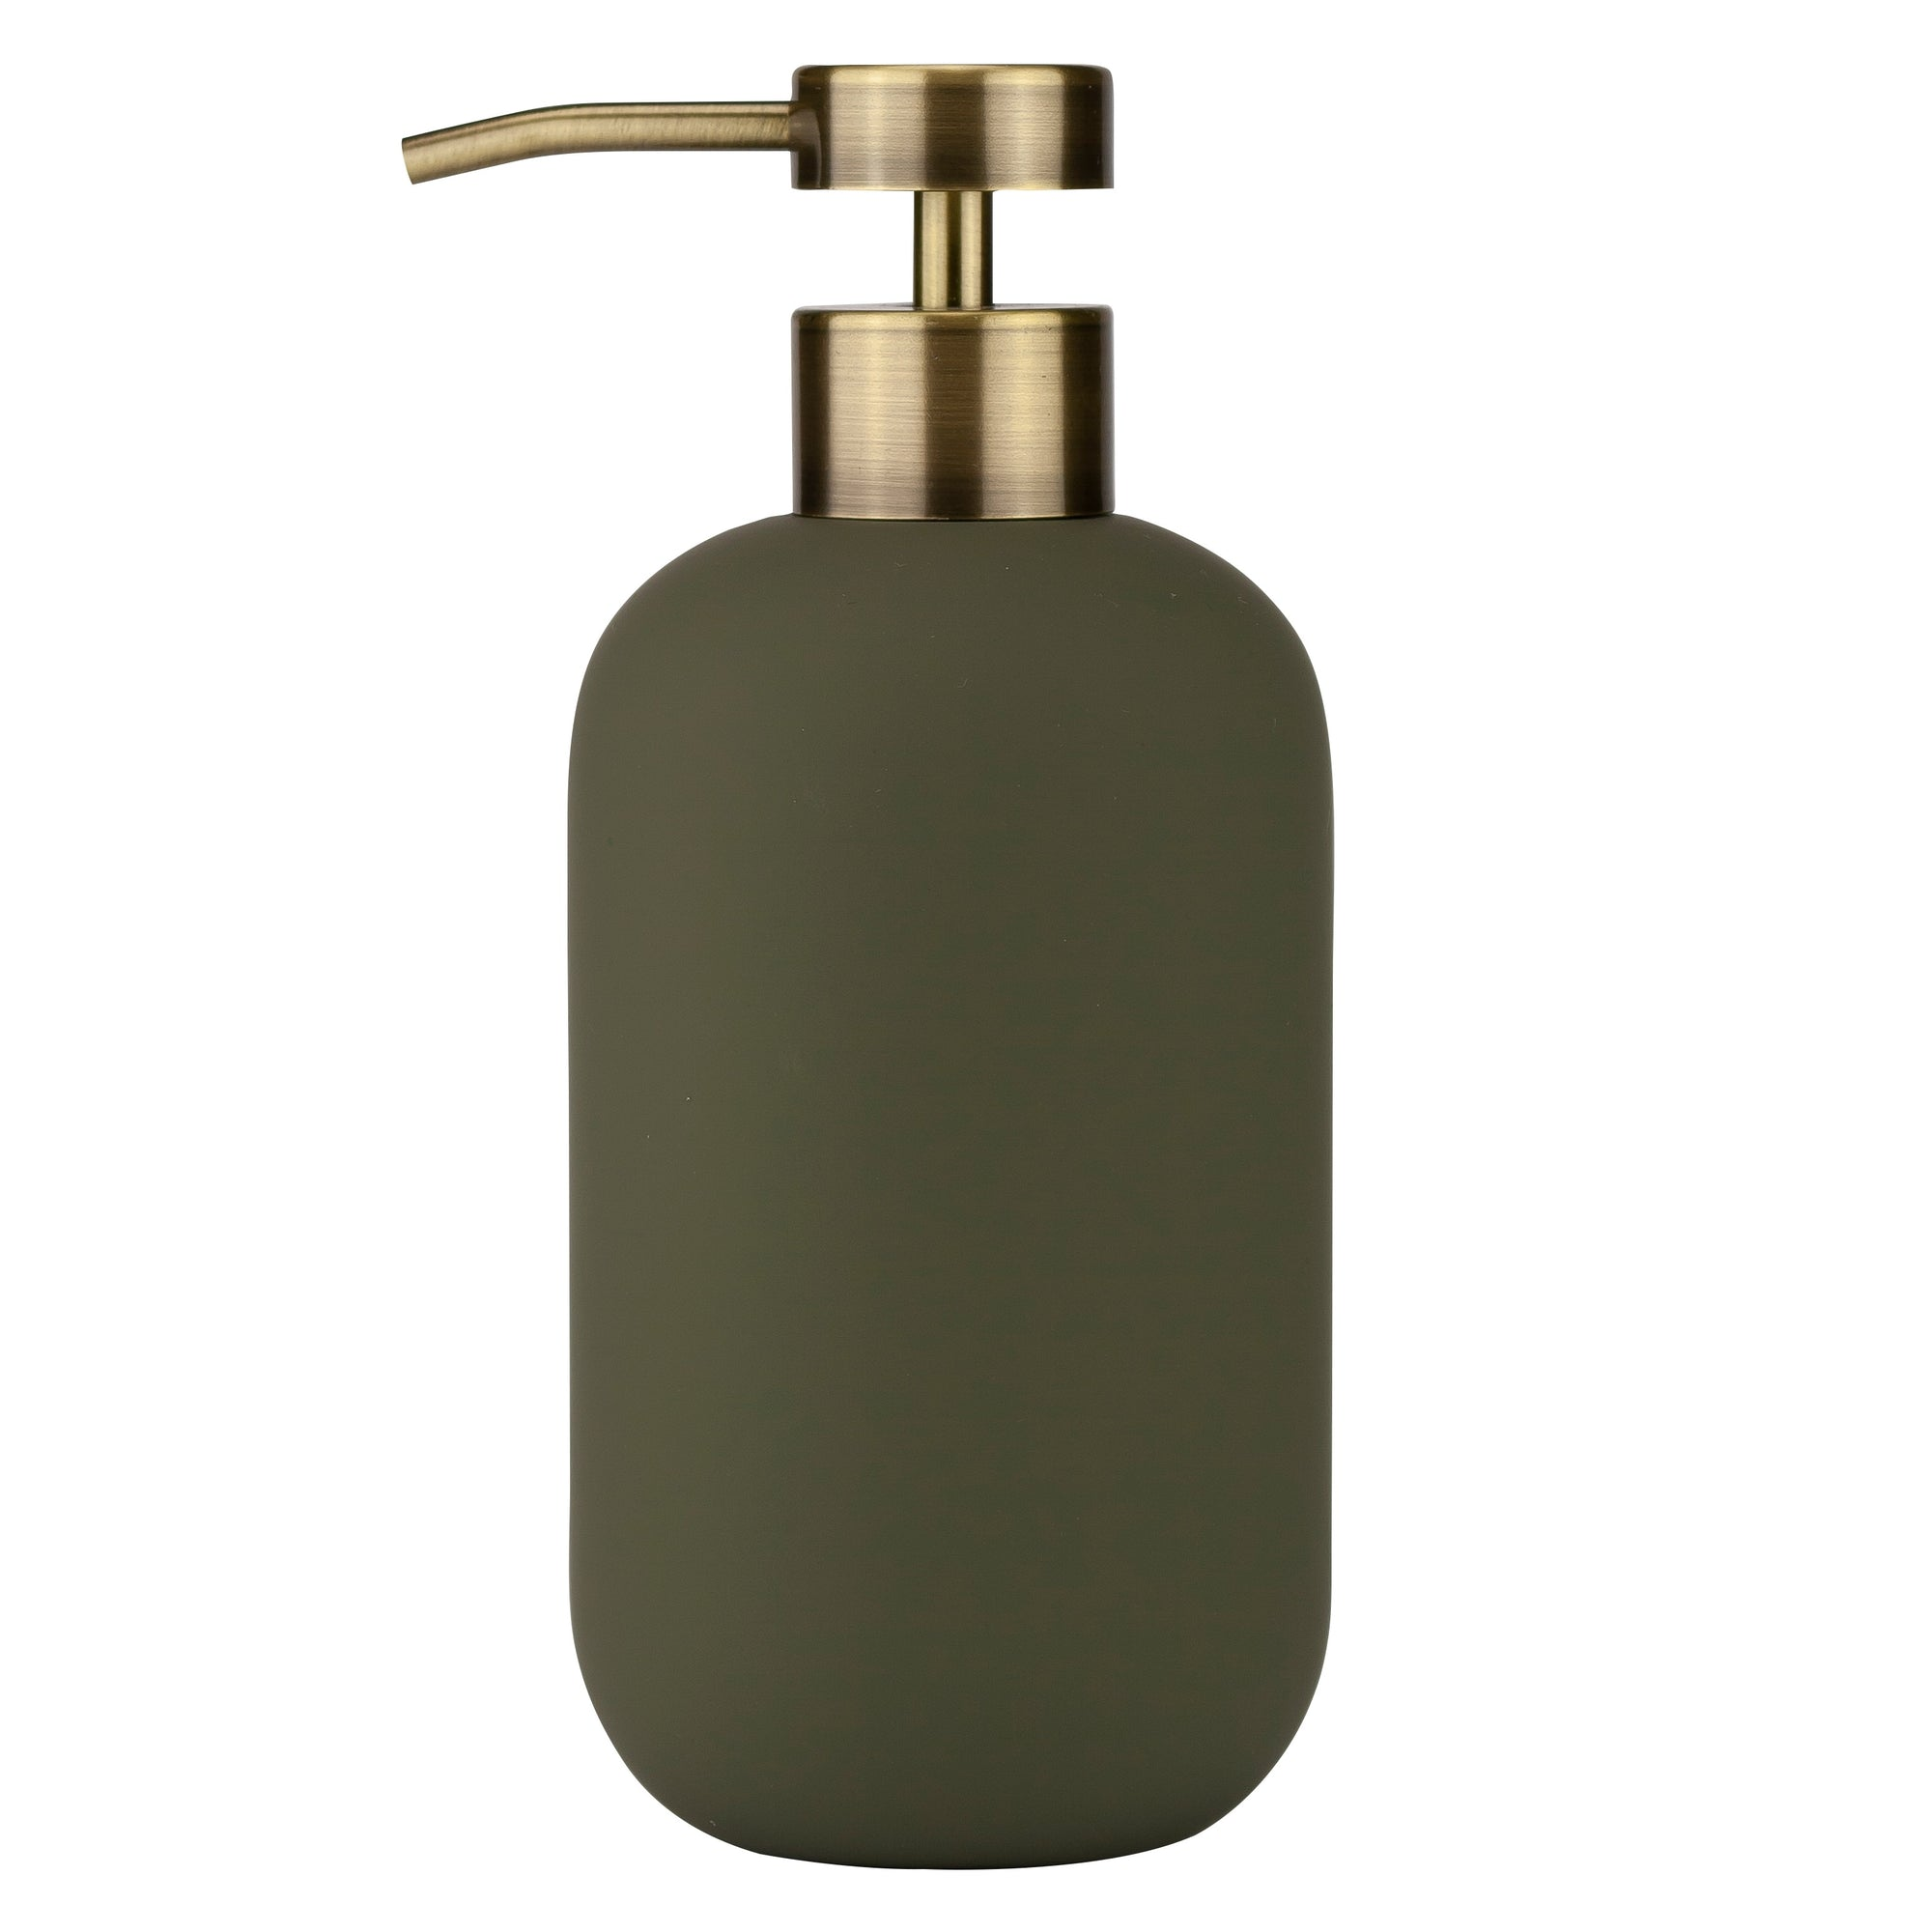 LOTUS Soap Dispenser- Dark Olive